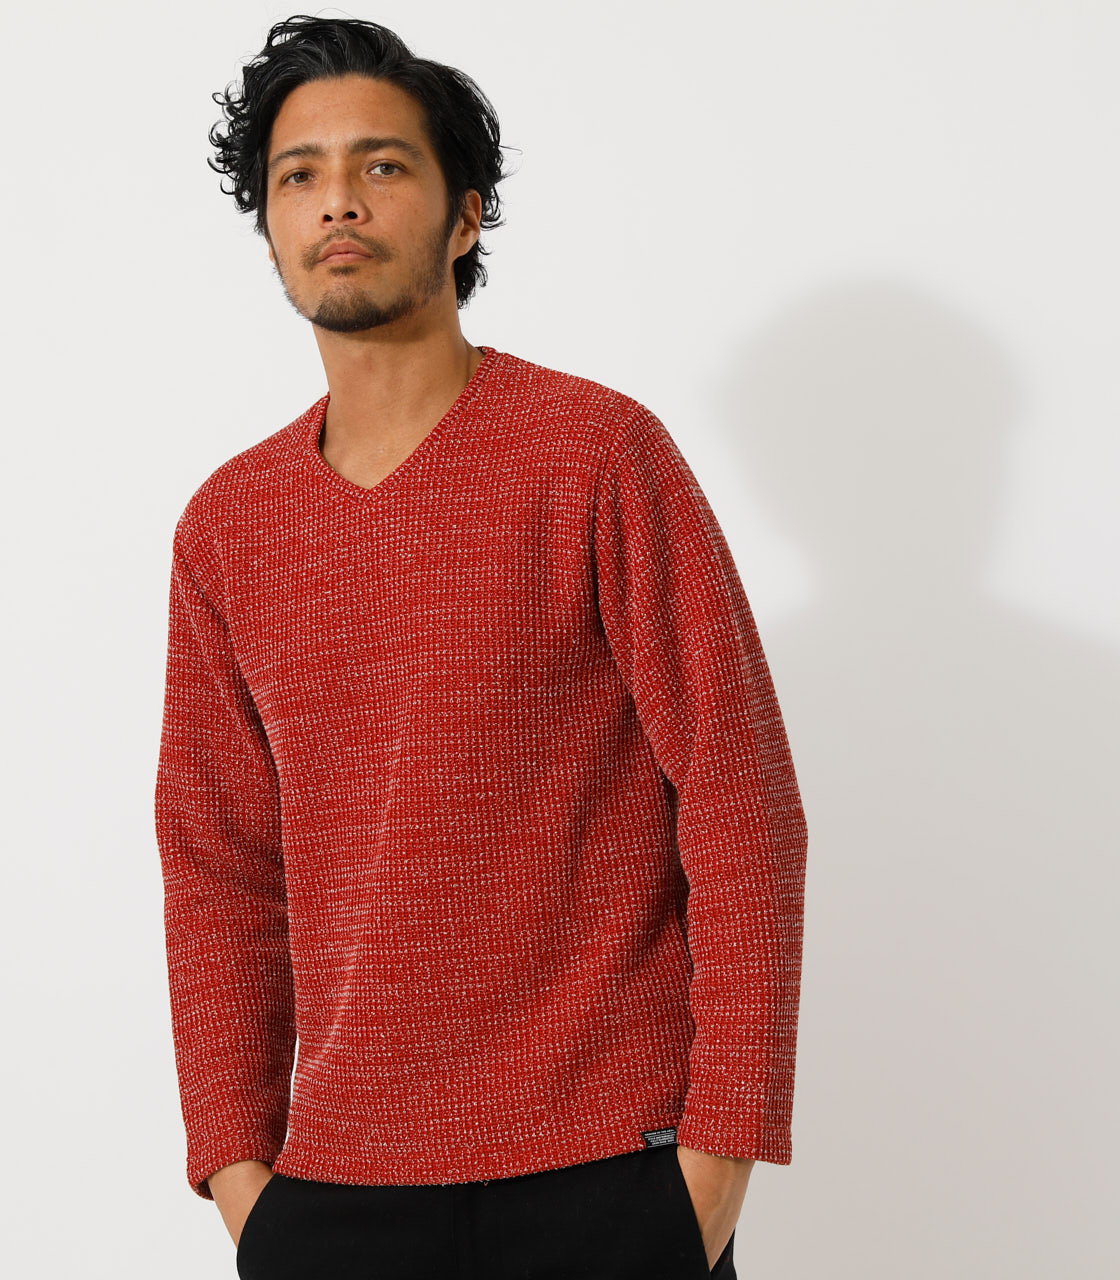 BRUSHED WAFFLE V/N LONG TEE/ブラッシュドワッフルVネックロングTシャツ 詳細画像 柄RED 1